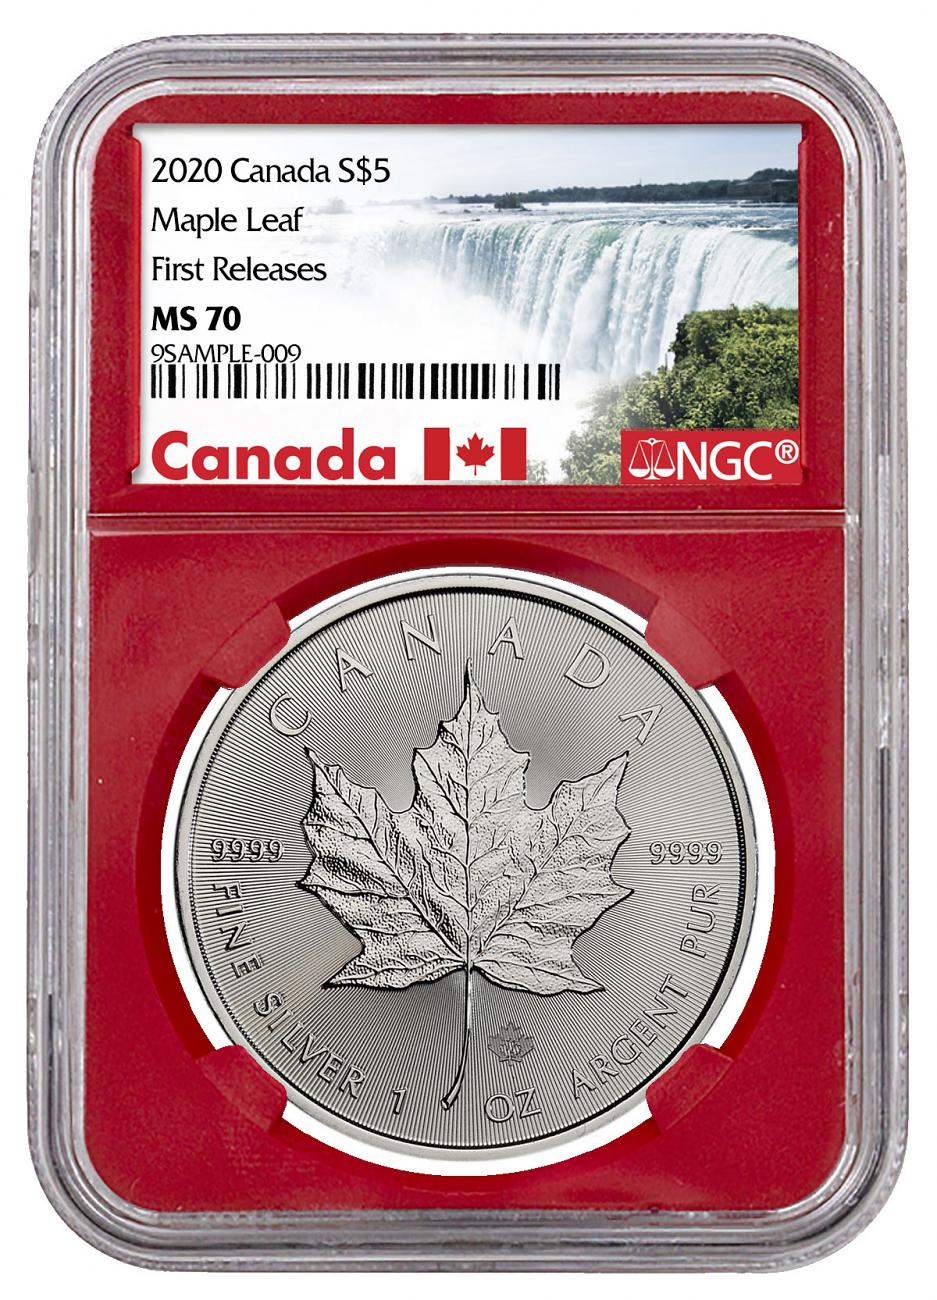 2020 Canada 1 oz Silver Maple Leaf $5 Coin NGC MS70 FR Red Core Holder Exclusive Canada Label